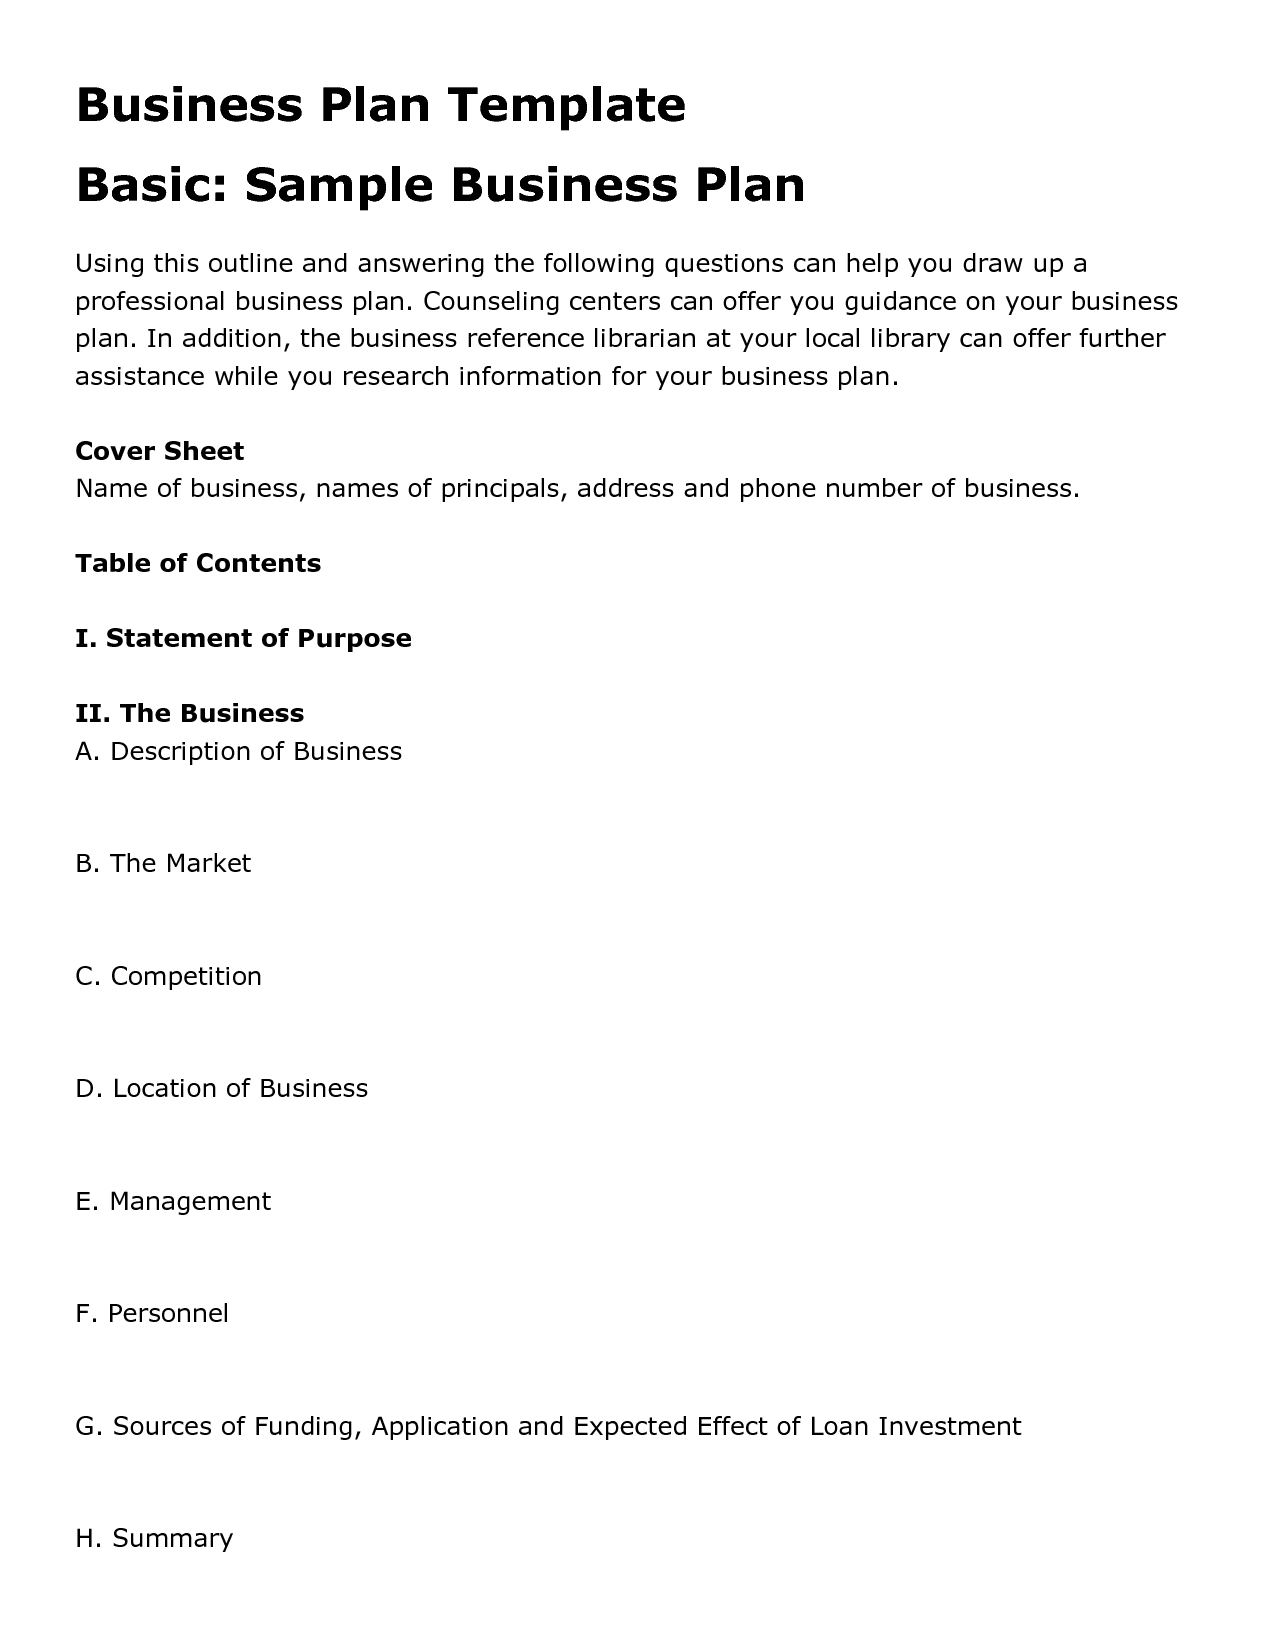 Get Business Plan Template Forms Free Printable With Premium Design And Ready To Print Business Plan Outline Business Plan Template Word Business Plan Example